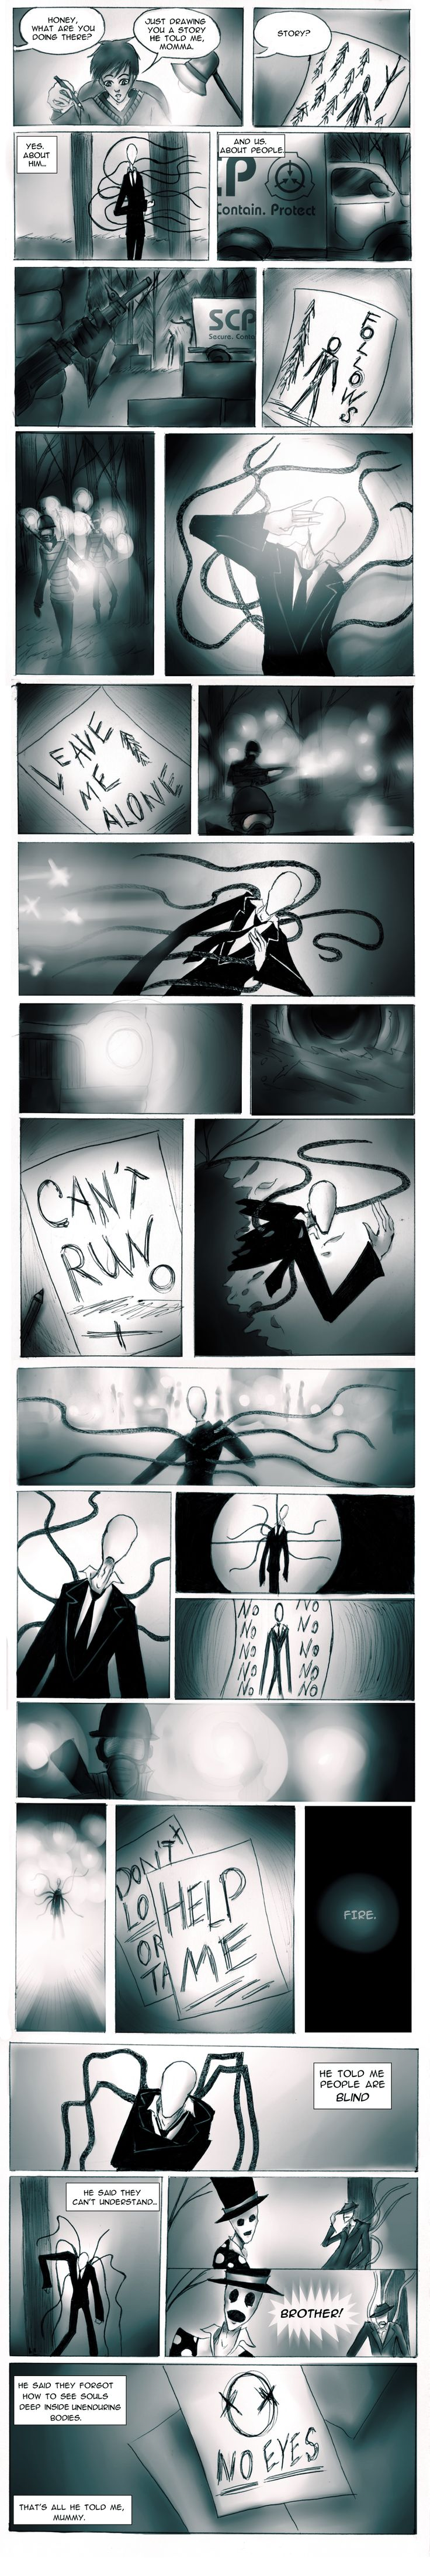 [ HAVE NO EYES ] Another 8 pages story. by Paradoxoid.deviantart.com on @DeviantArt